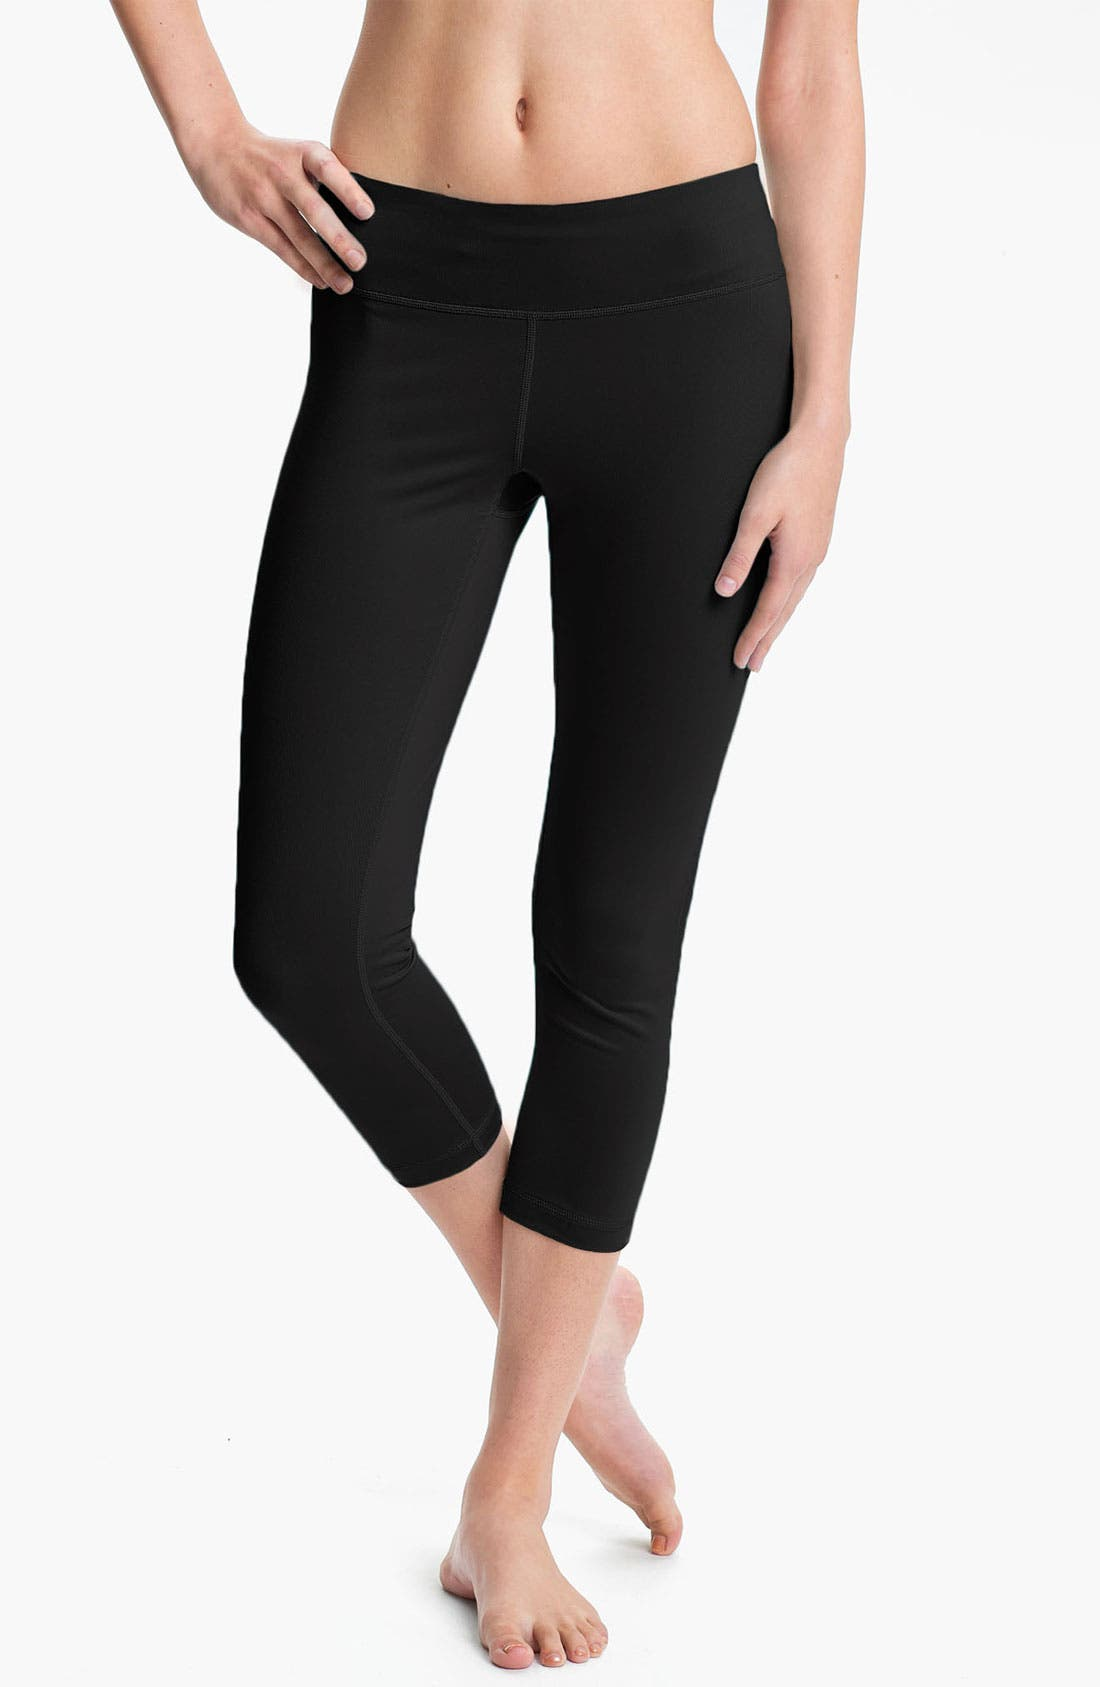 Alternate Image 1 Selected - Zella 'Live In - Streamline' Mesh Inset Capri Leggings